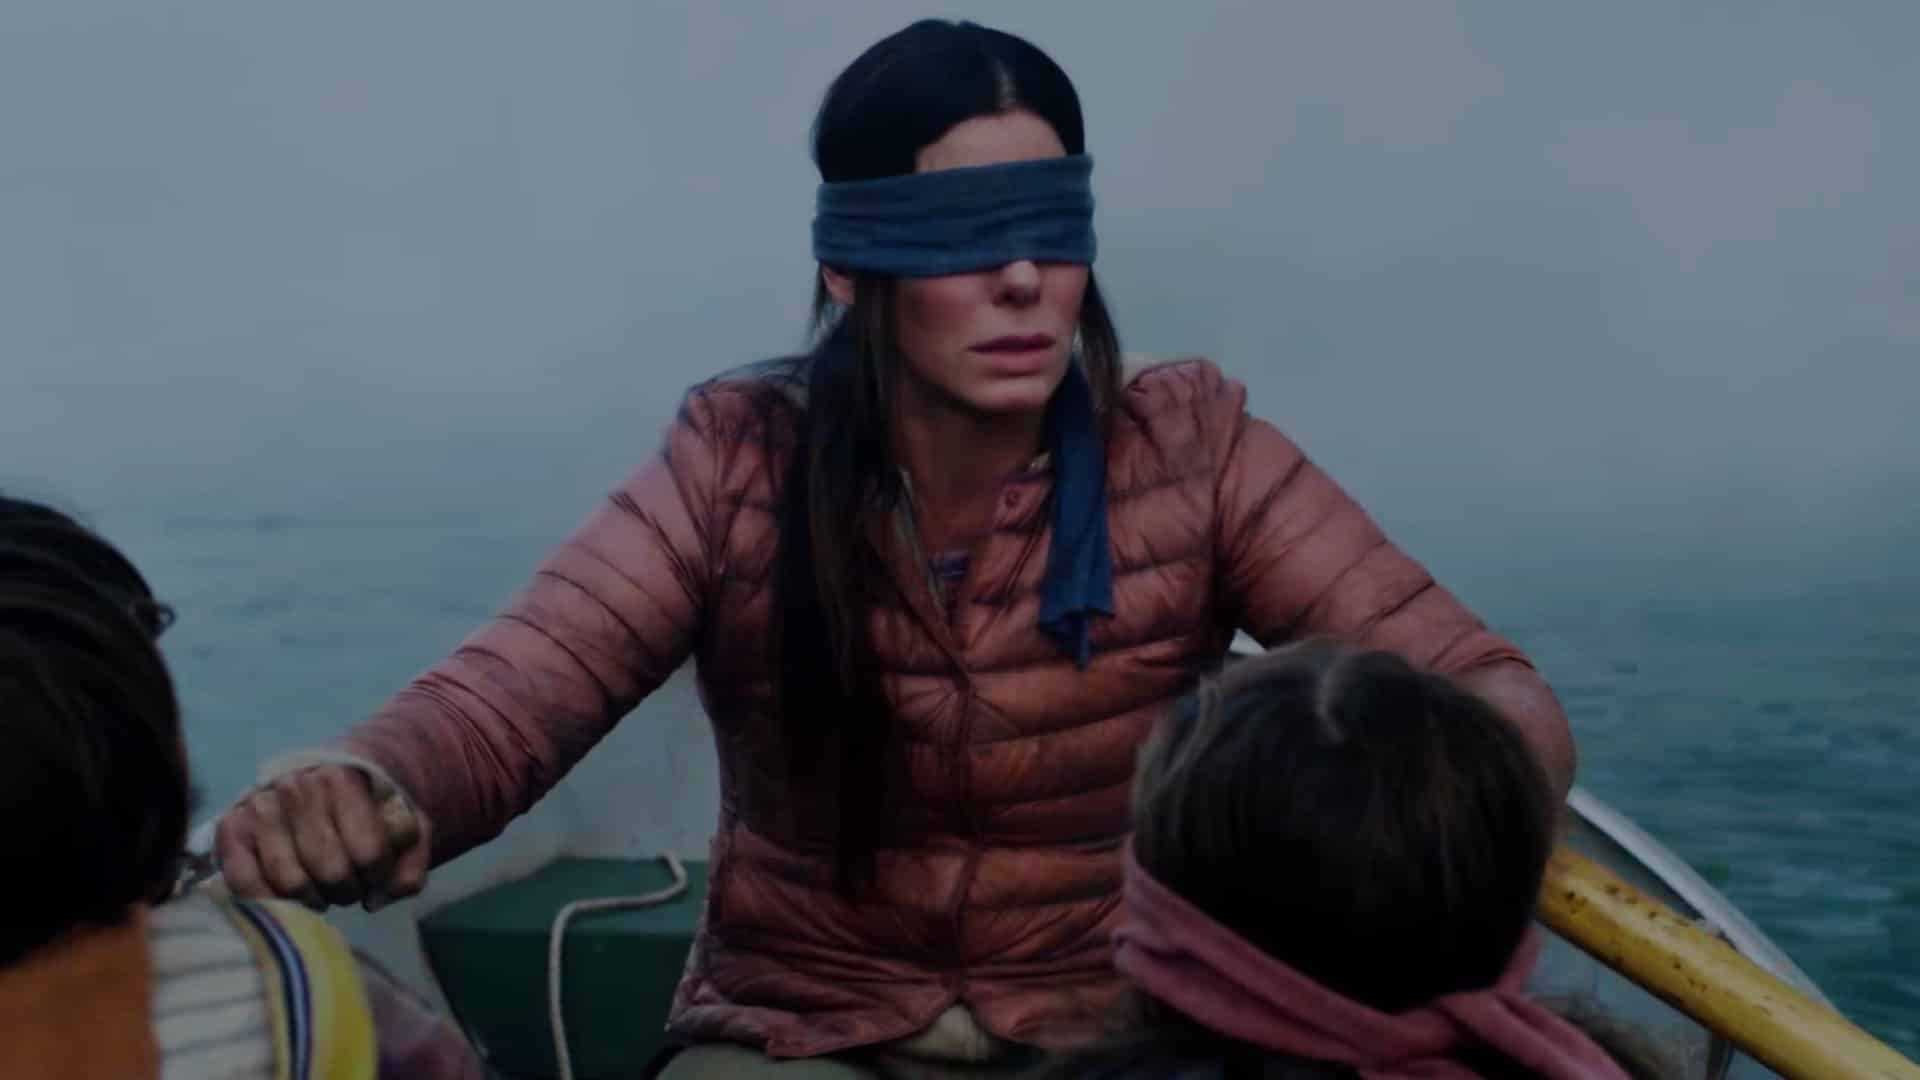 Netflix says over 45 million accounts watched Bird Box